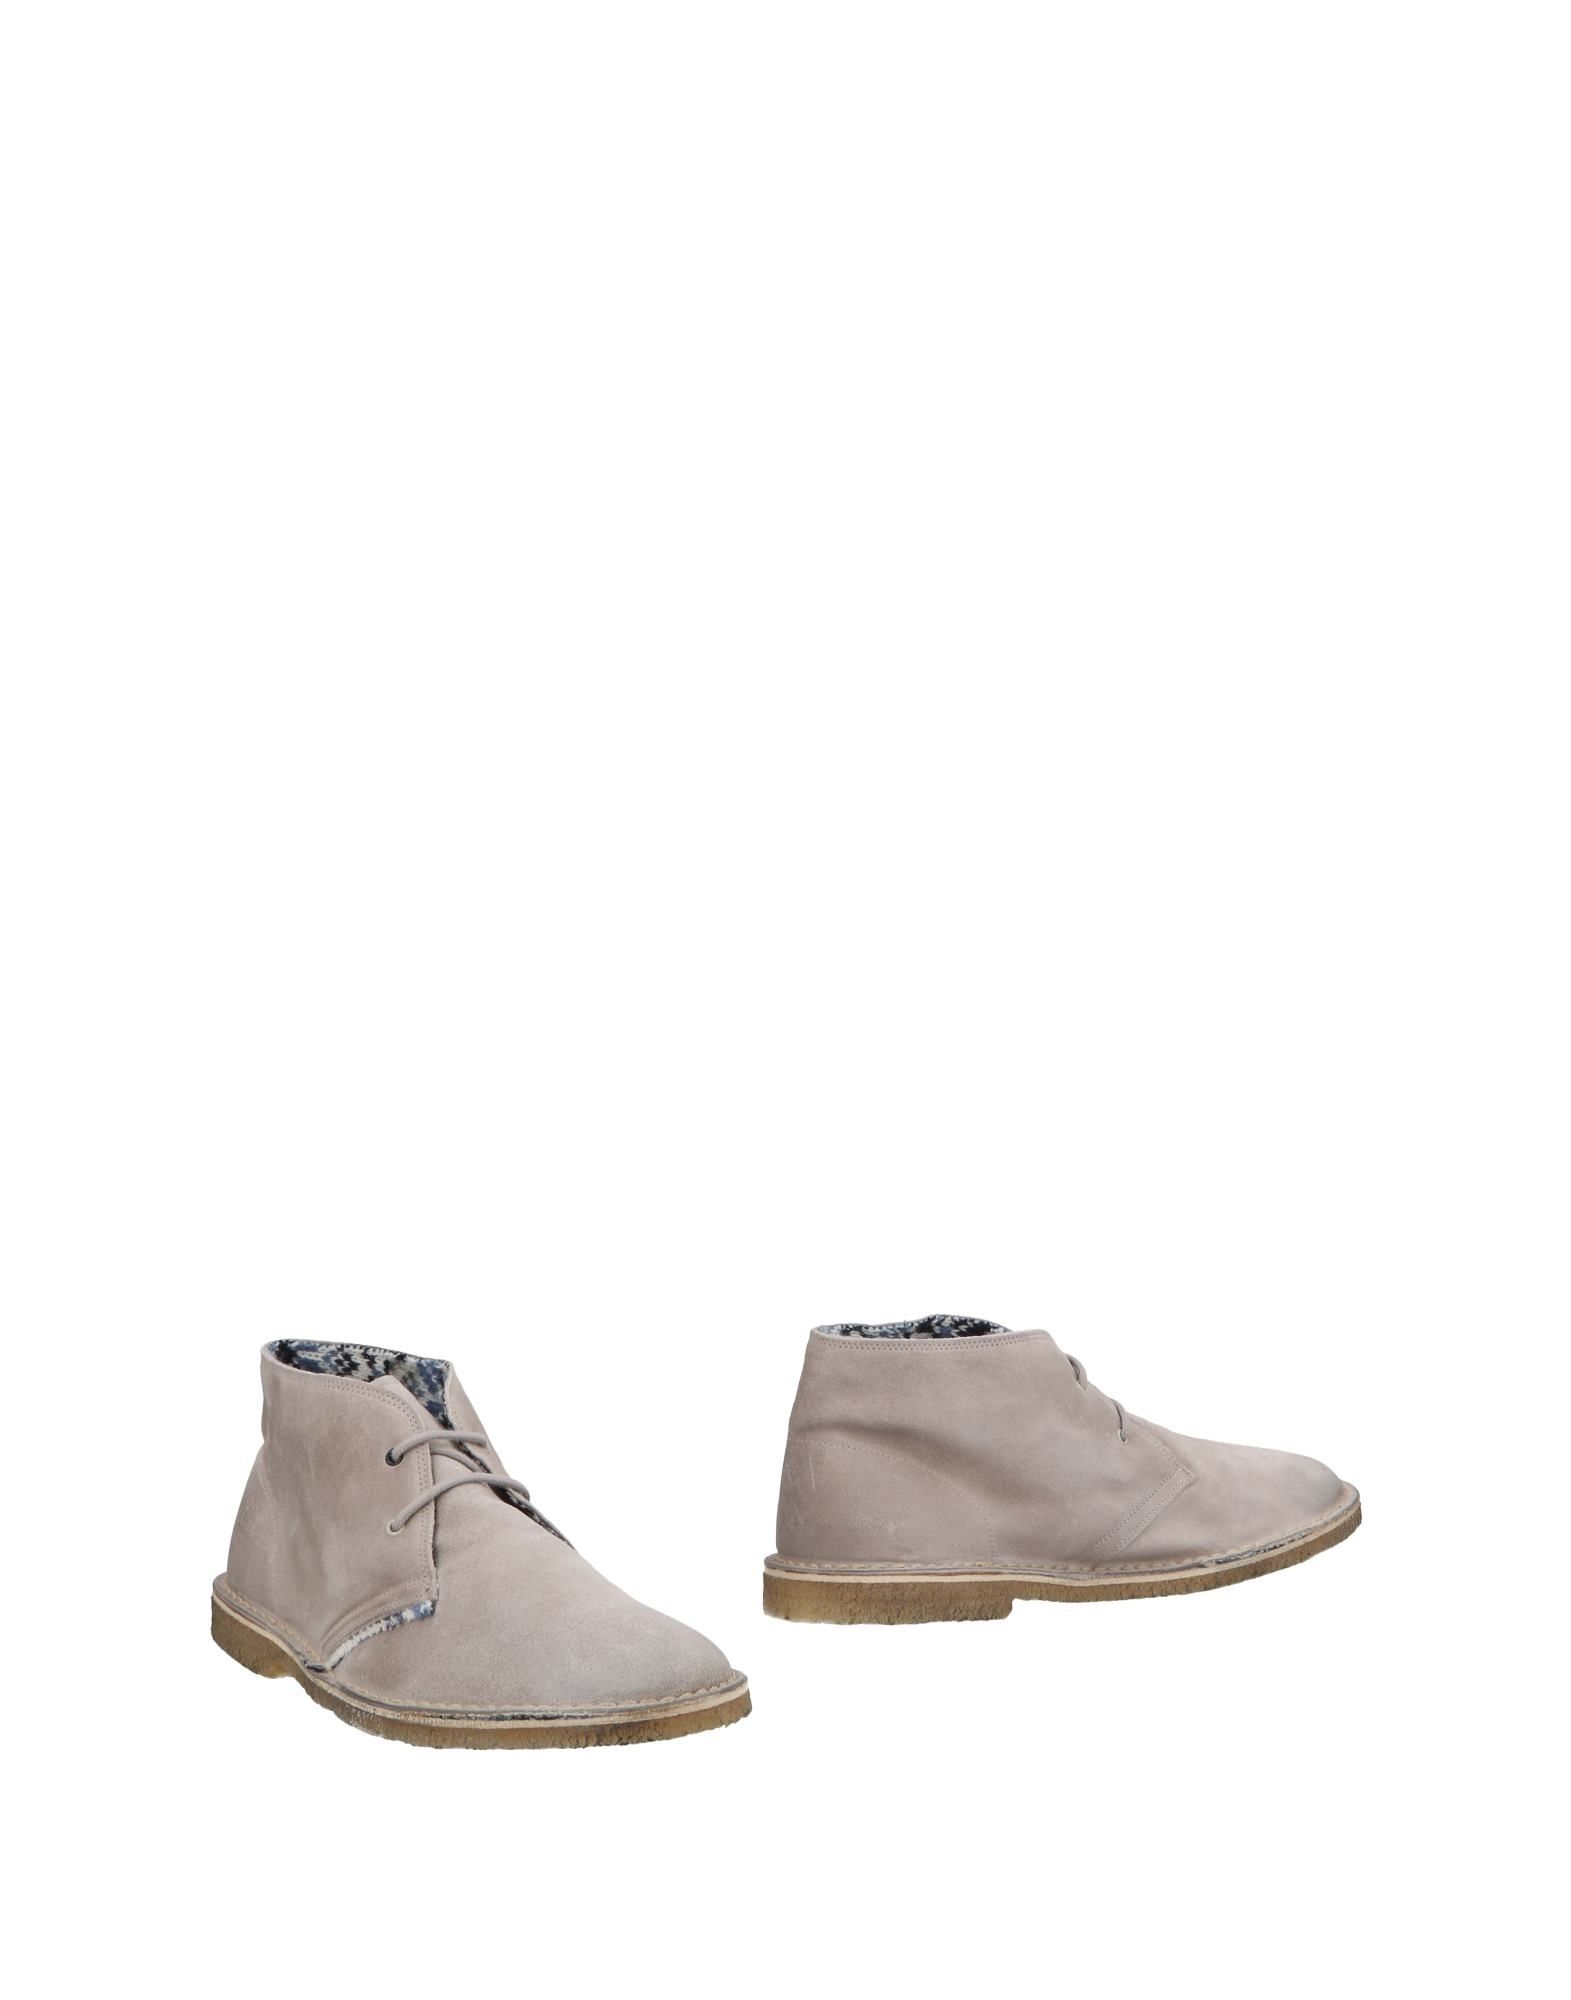 LE CROWN Boots in Light Grey